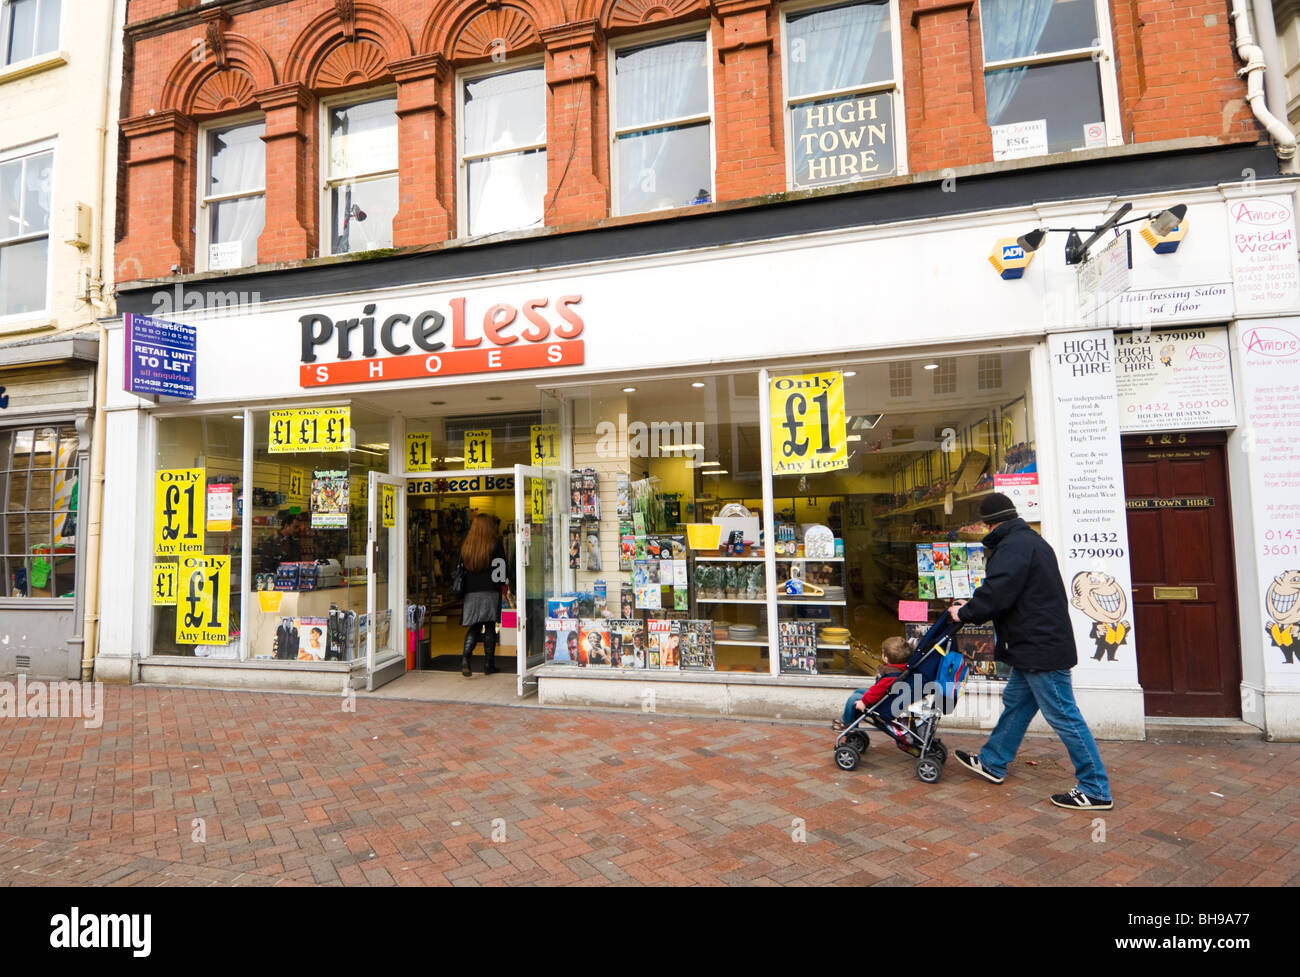 PriceLess Shop Hereford Herefordshire - Stock Image